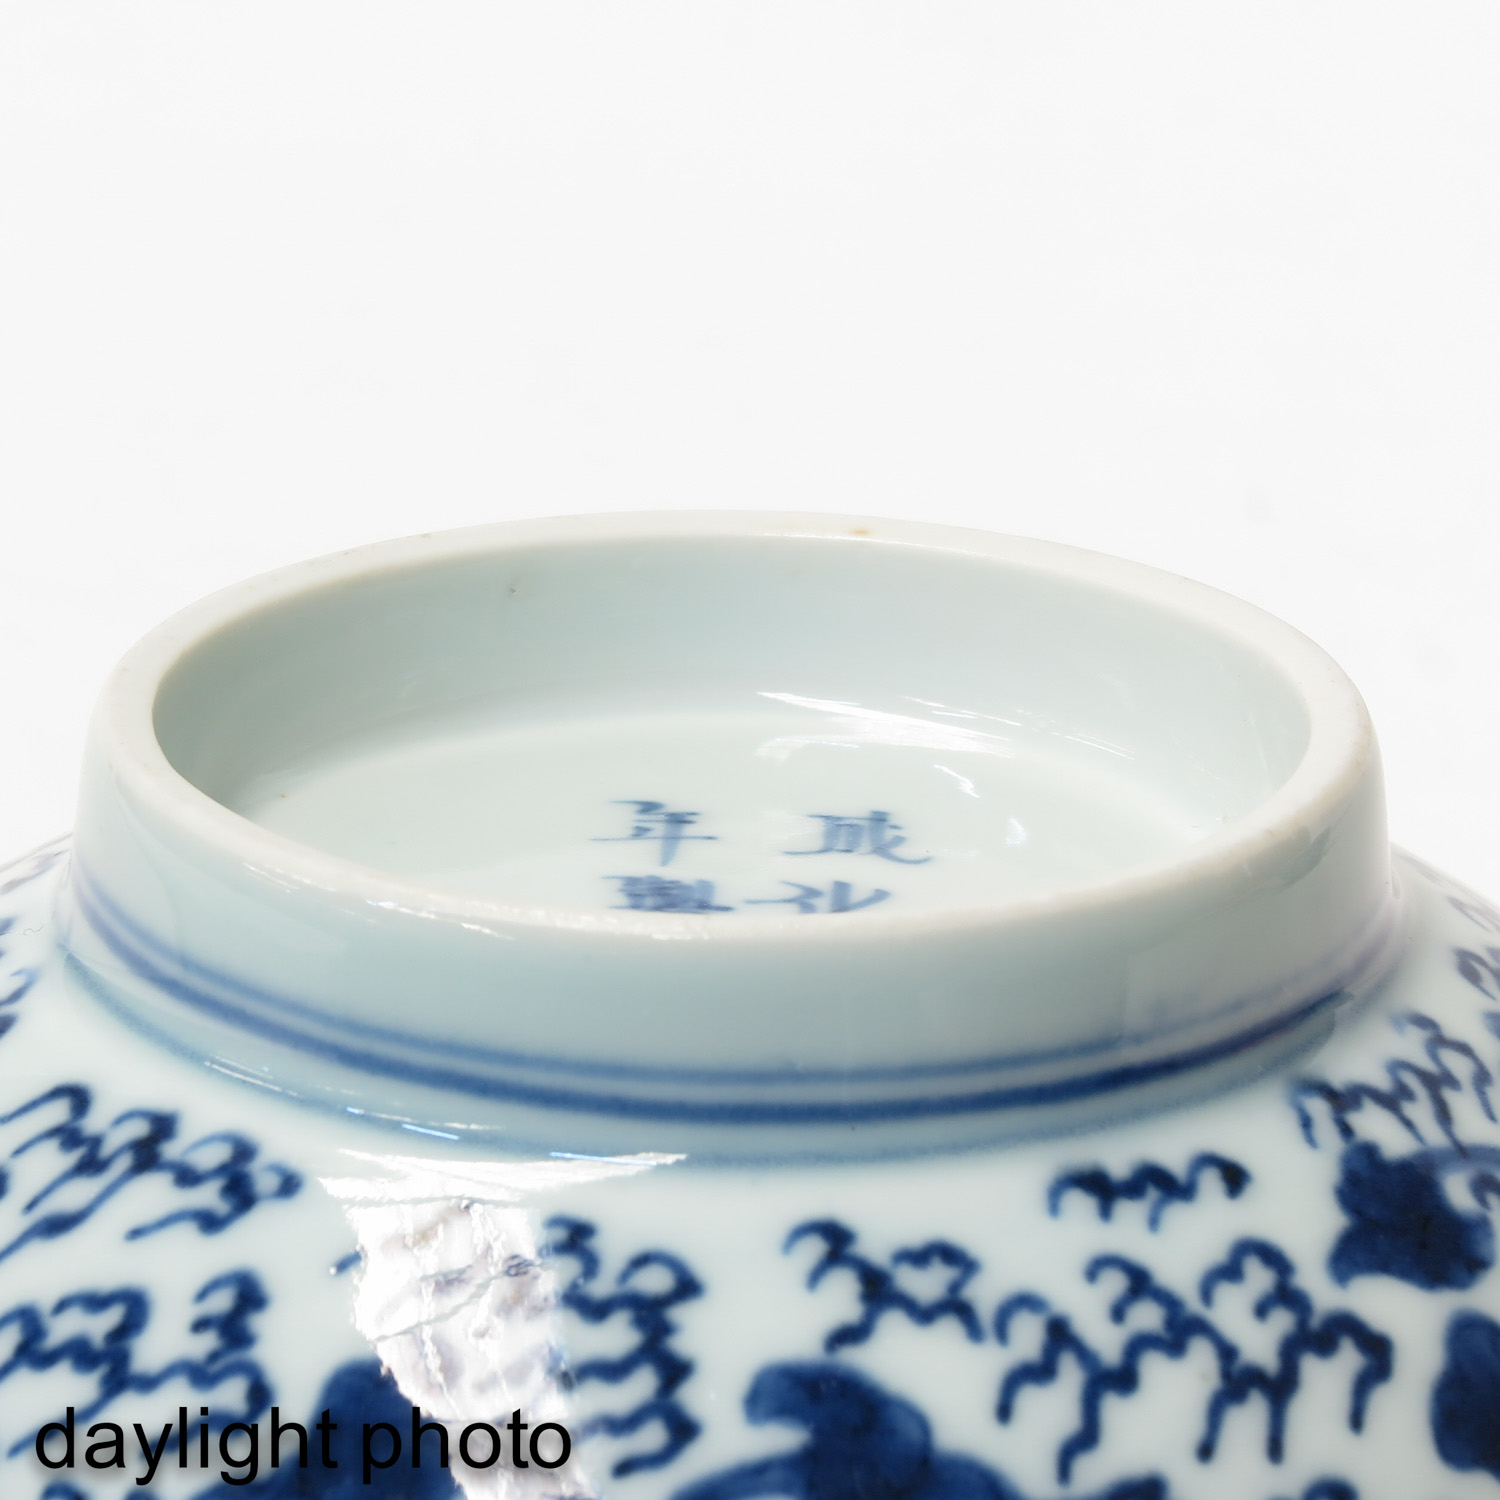 A Pair of Blue and White Bowls - Image 8 of 9